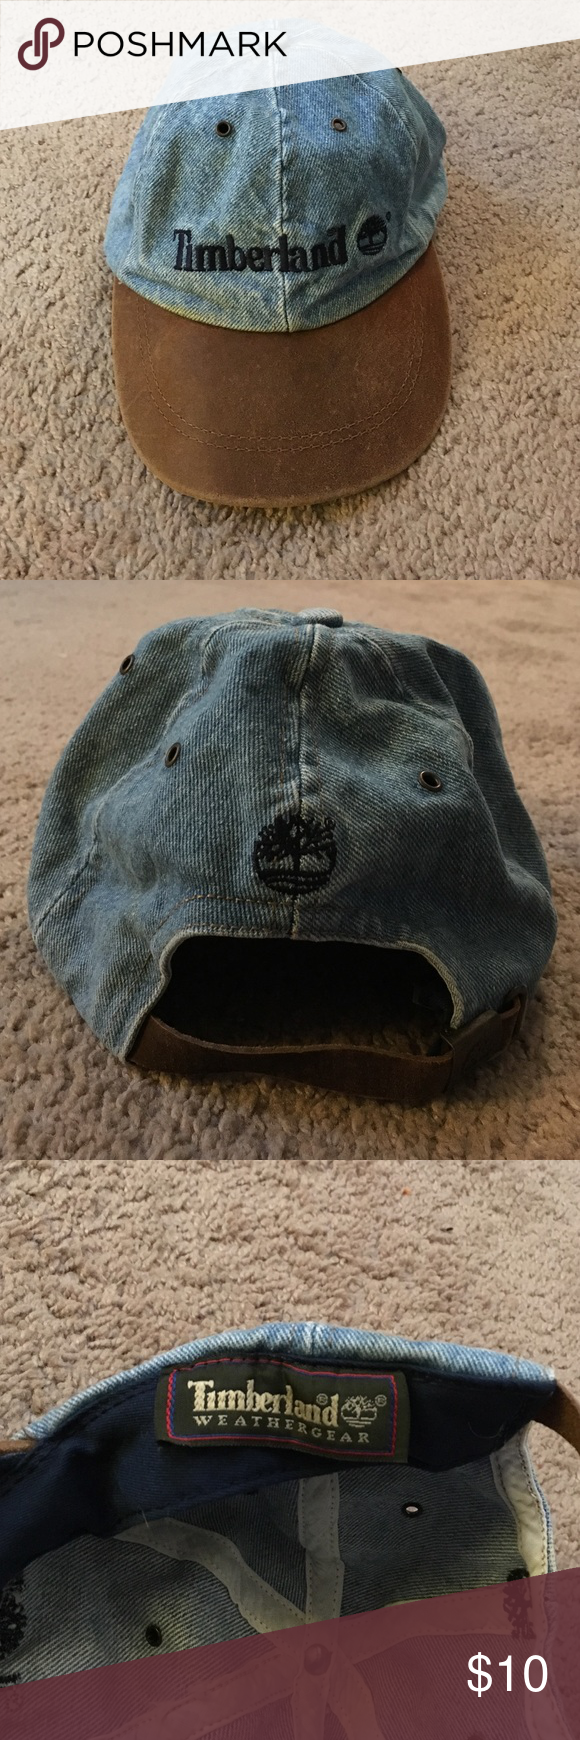 90170694d1c Old school Timberland leather hat